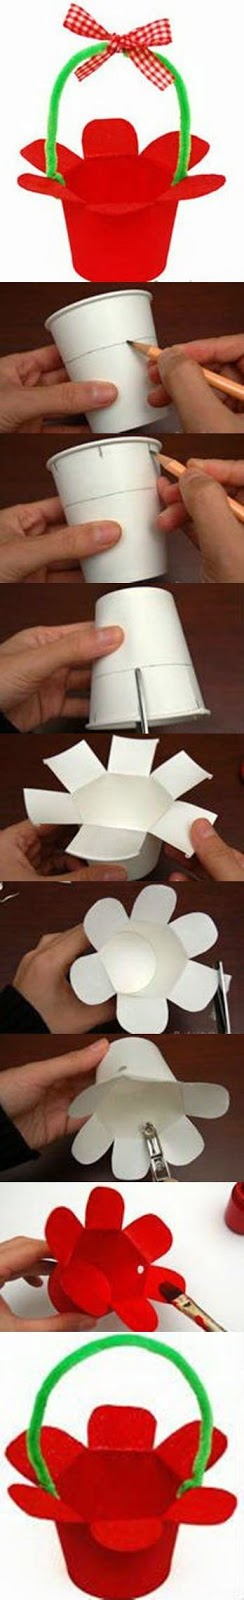 Handmade Paper Baskets Step By Step : Innovative arts how to make paper cup basket step by